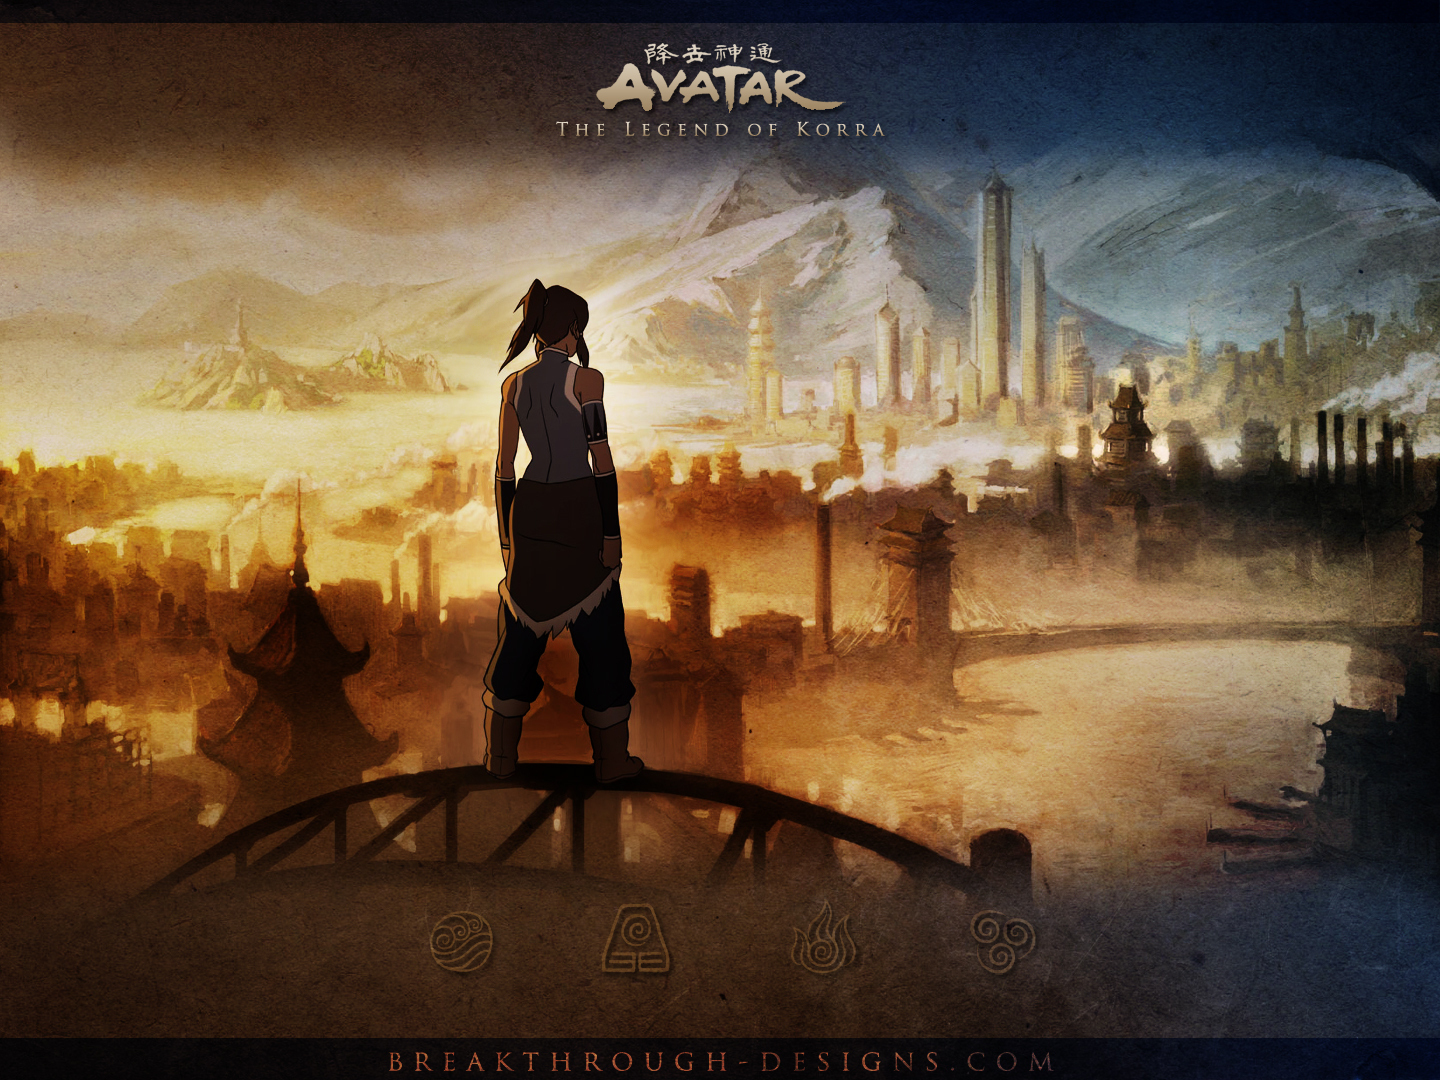 http://3.bp.blogspot.com/-tJ7eNrwCNak/Tc5boxe_KKI/AAAAAAAAABY/YXyRvYyb8Jo/s1600/Avatar-The-Legend-of-Korra-avatar-the-last-airbender-15790739-1440-1080.jpg